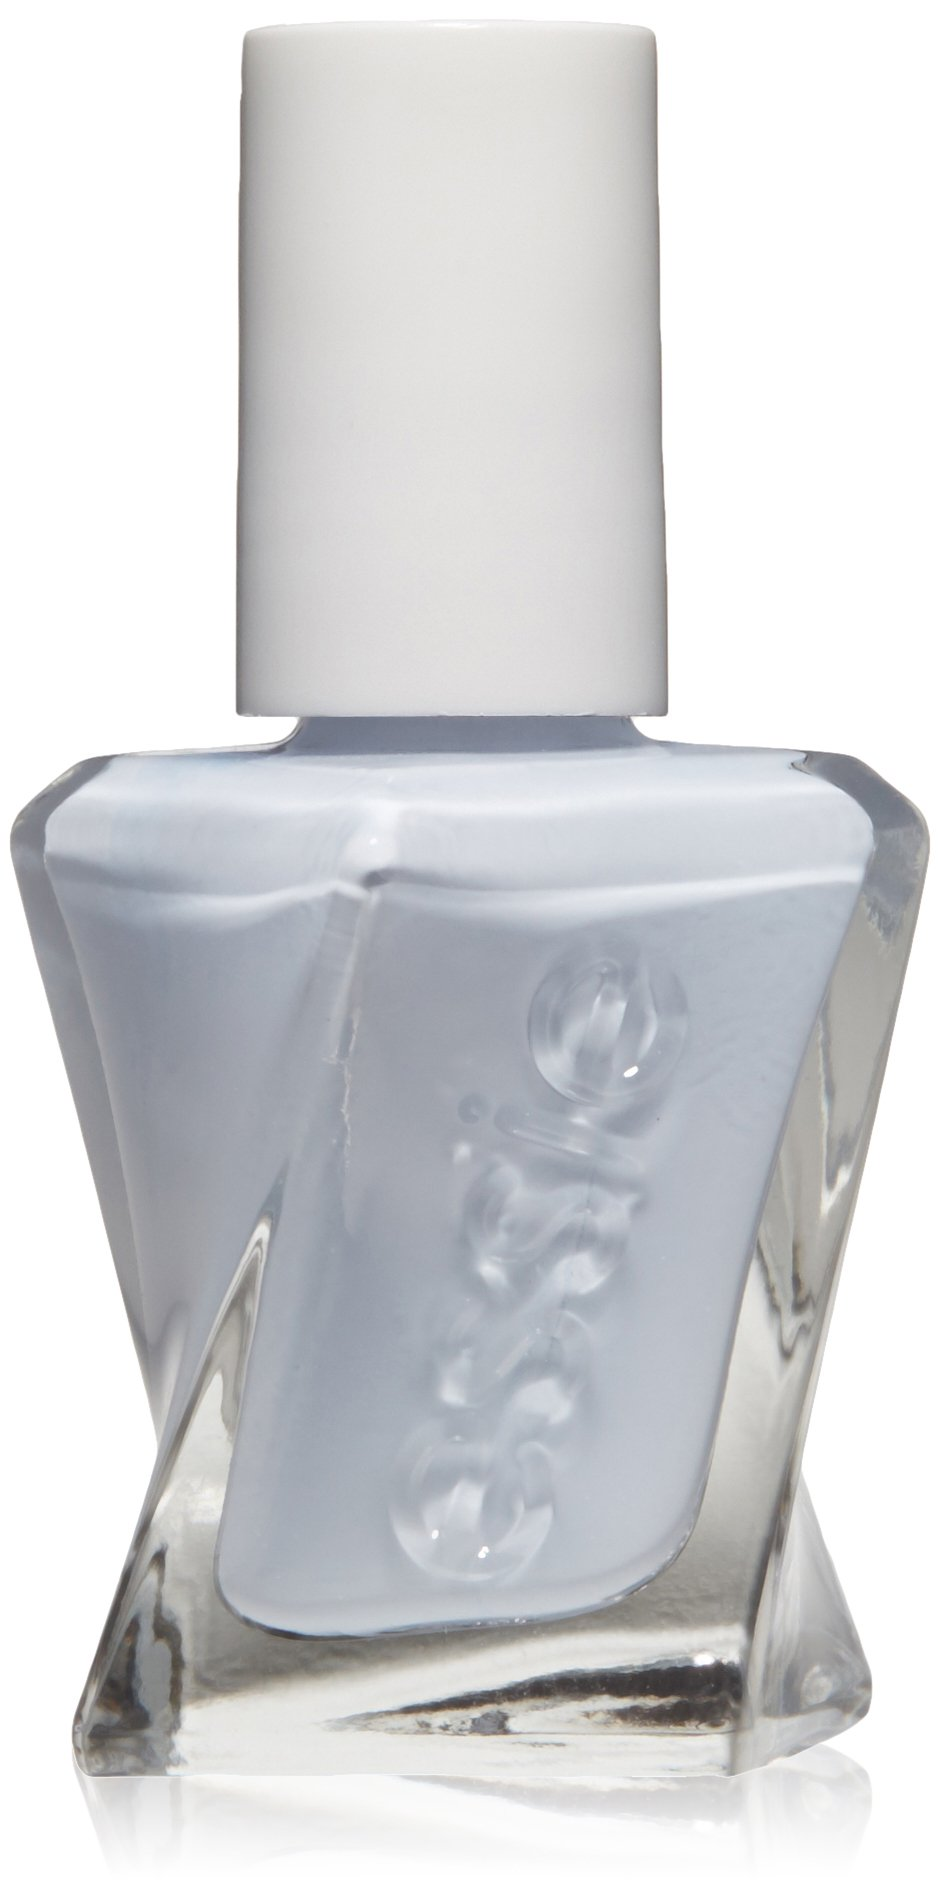 Amazon.com : essie gel couture nail polish, at the barre, nude ...